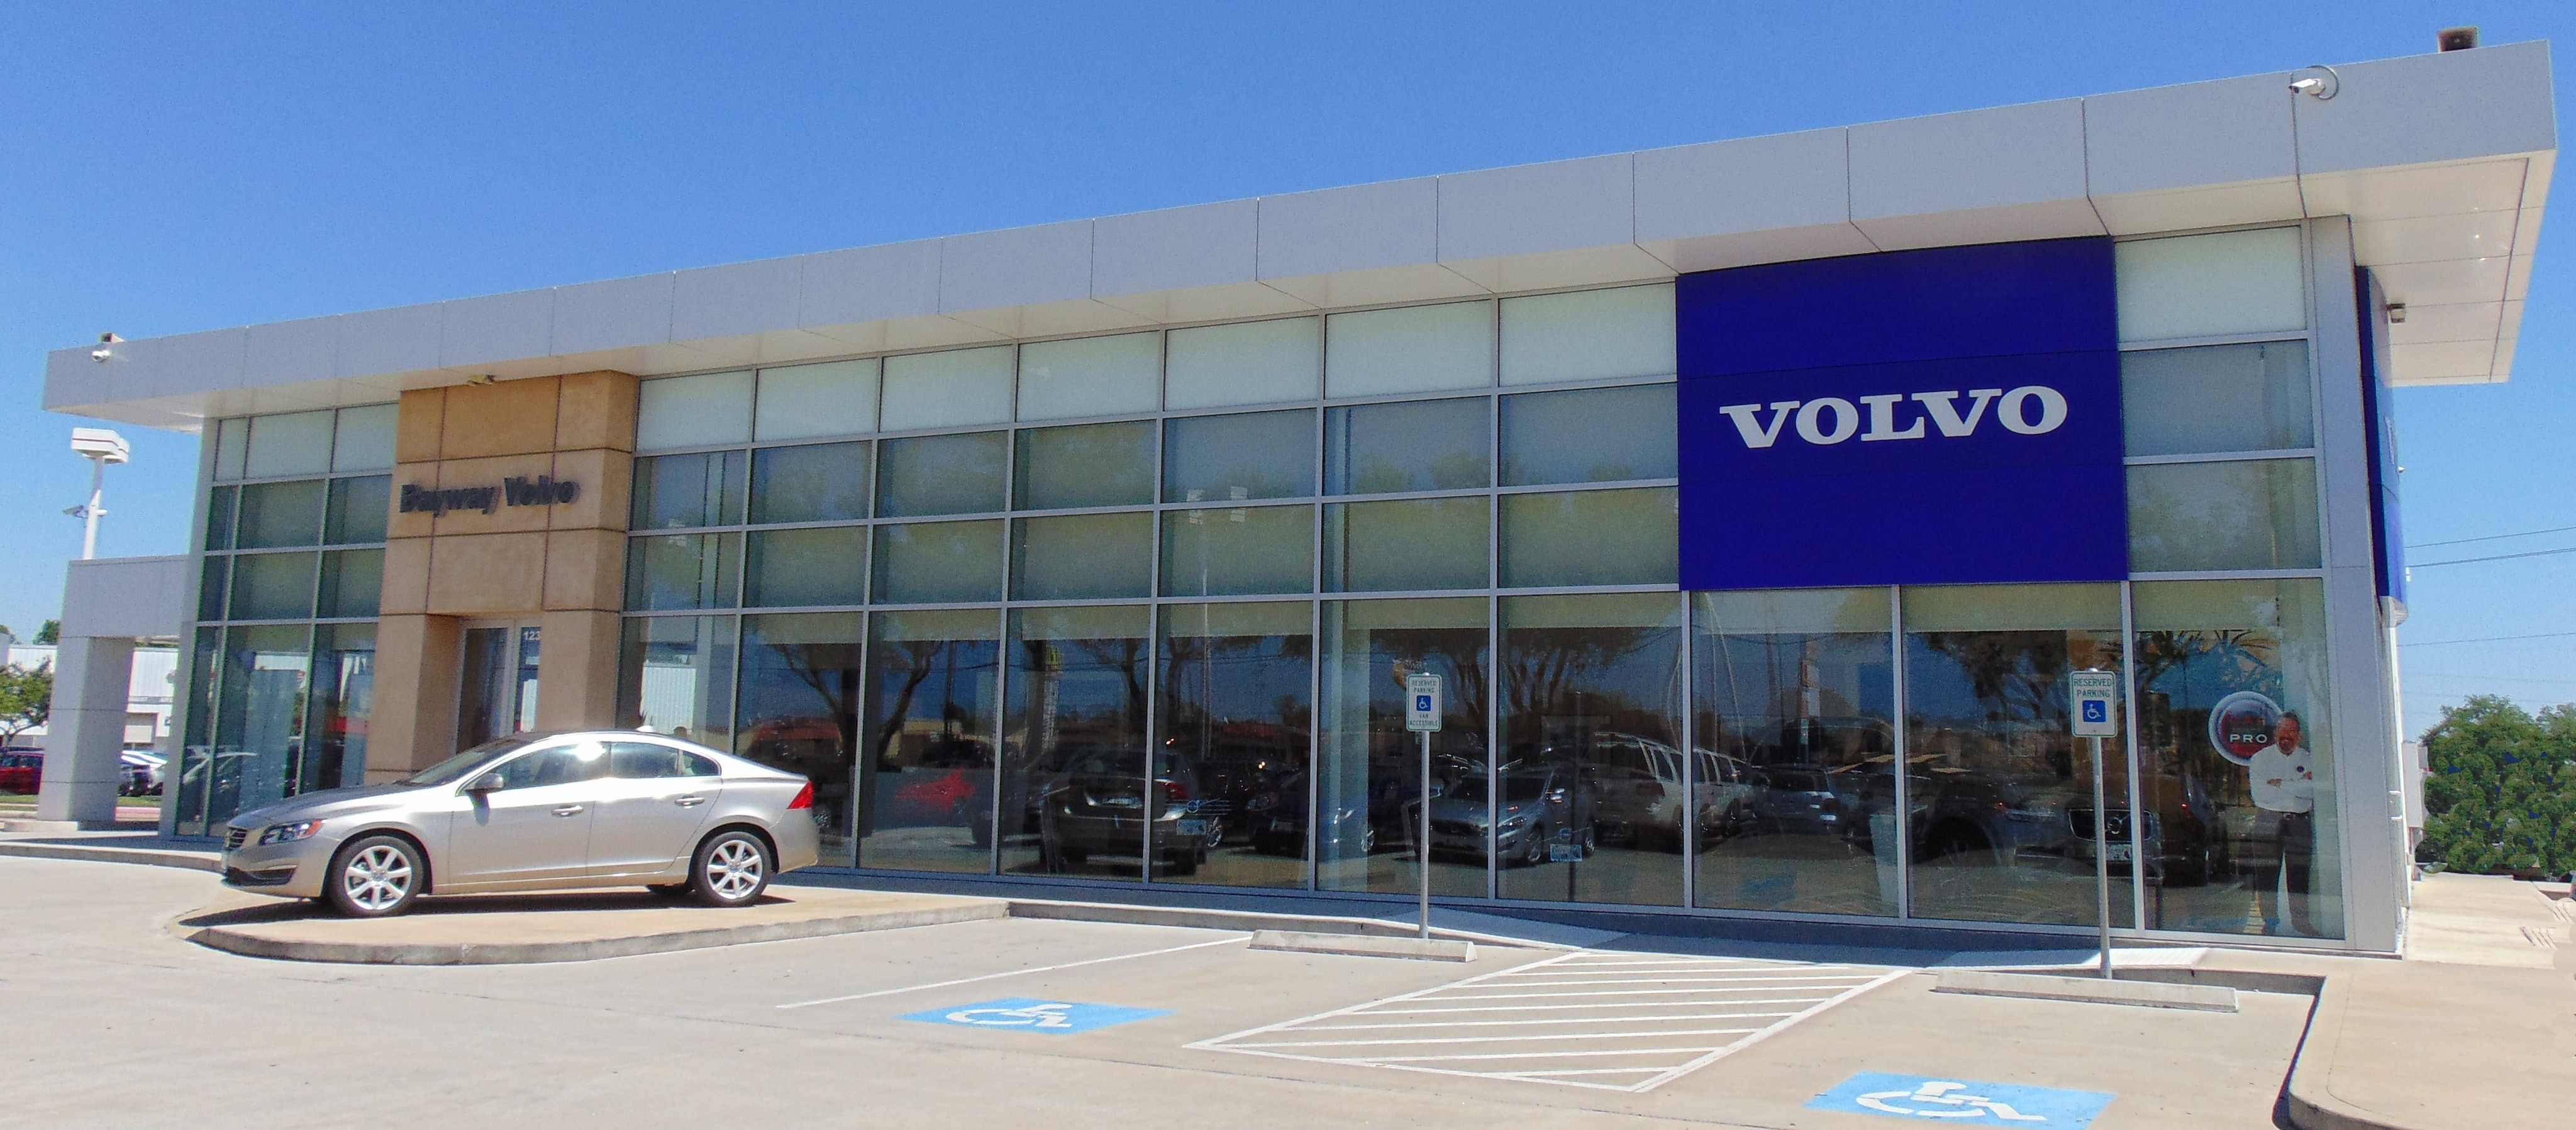 Bayway Volvo Cars | New & Used Volvo Dealership in Houston, TX